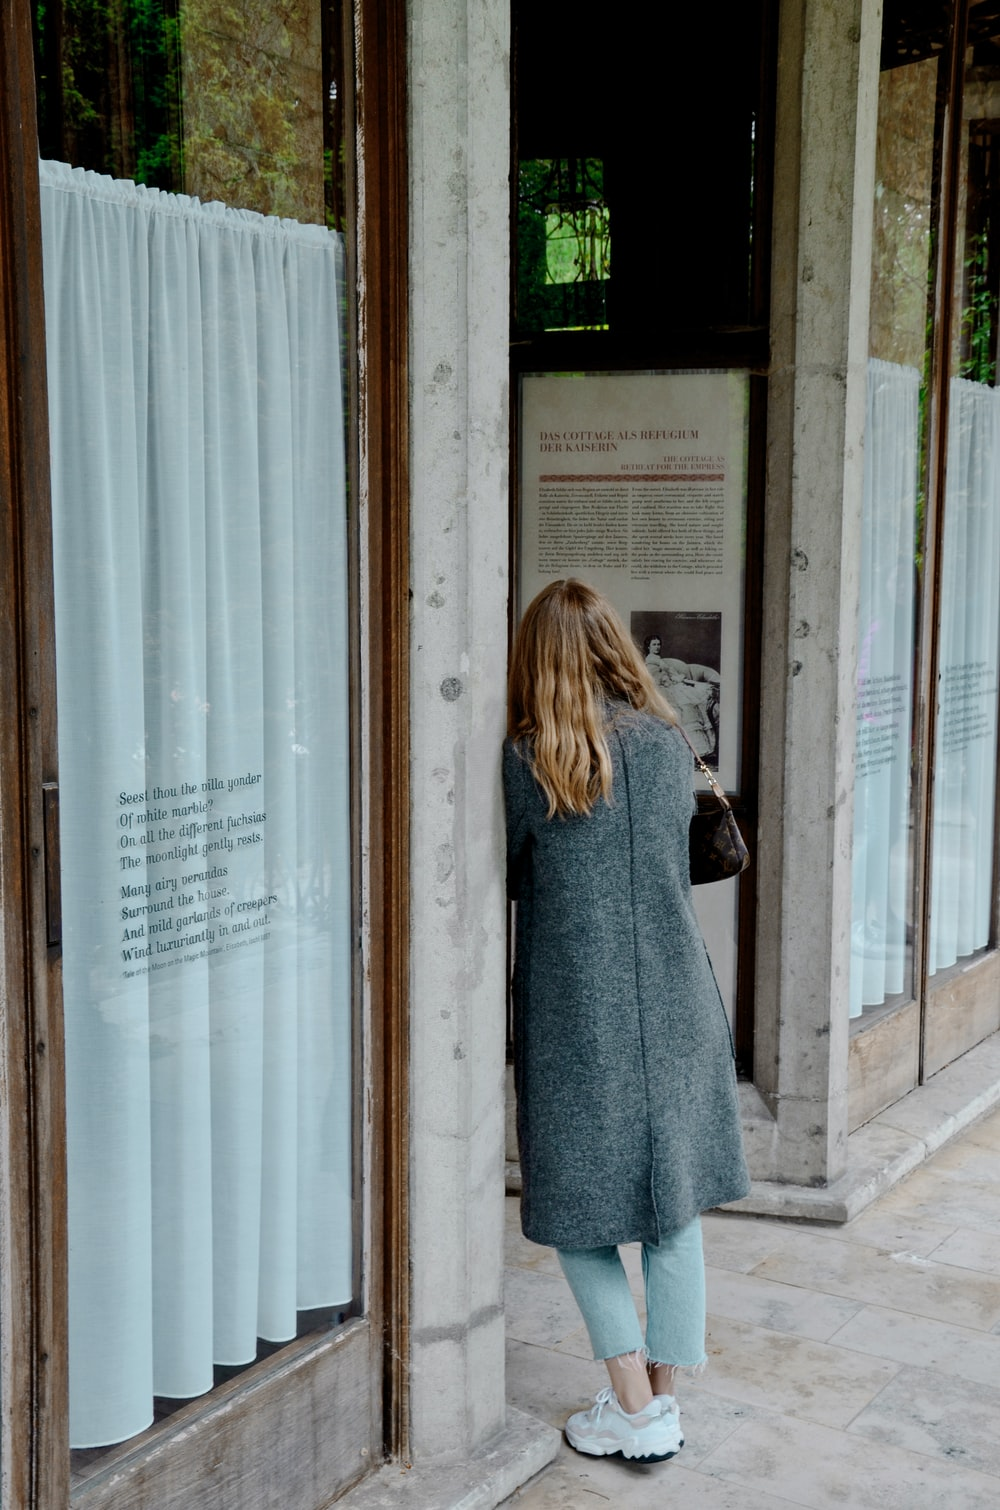 woman in gray coat standing in front of glass window